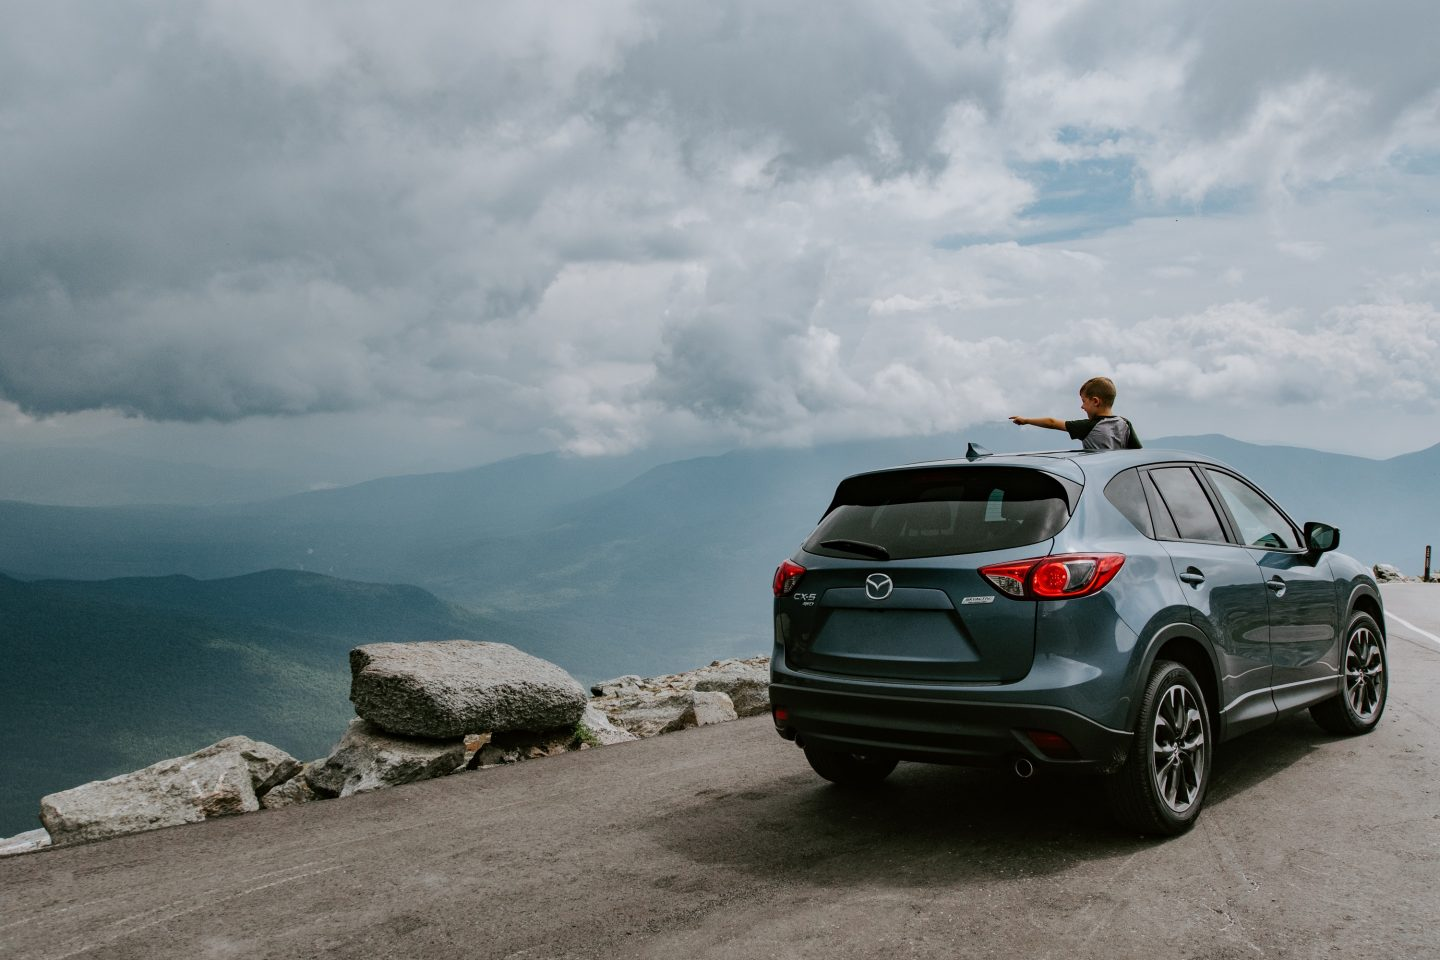 Child standing through the sunroof of a car on a mountain mountain pass